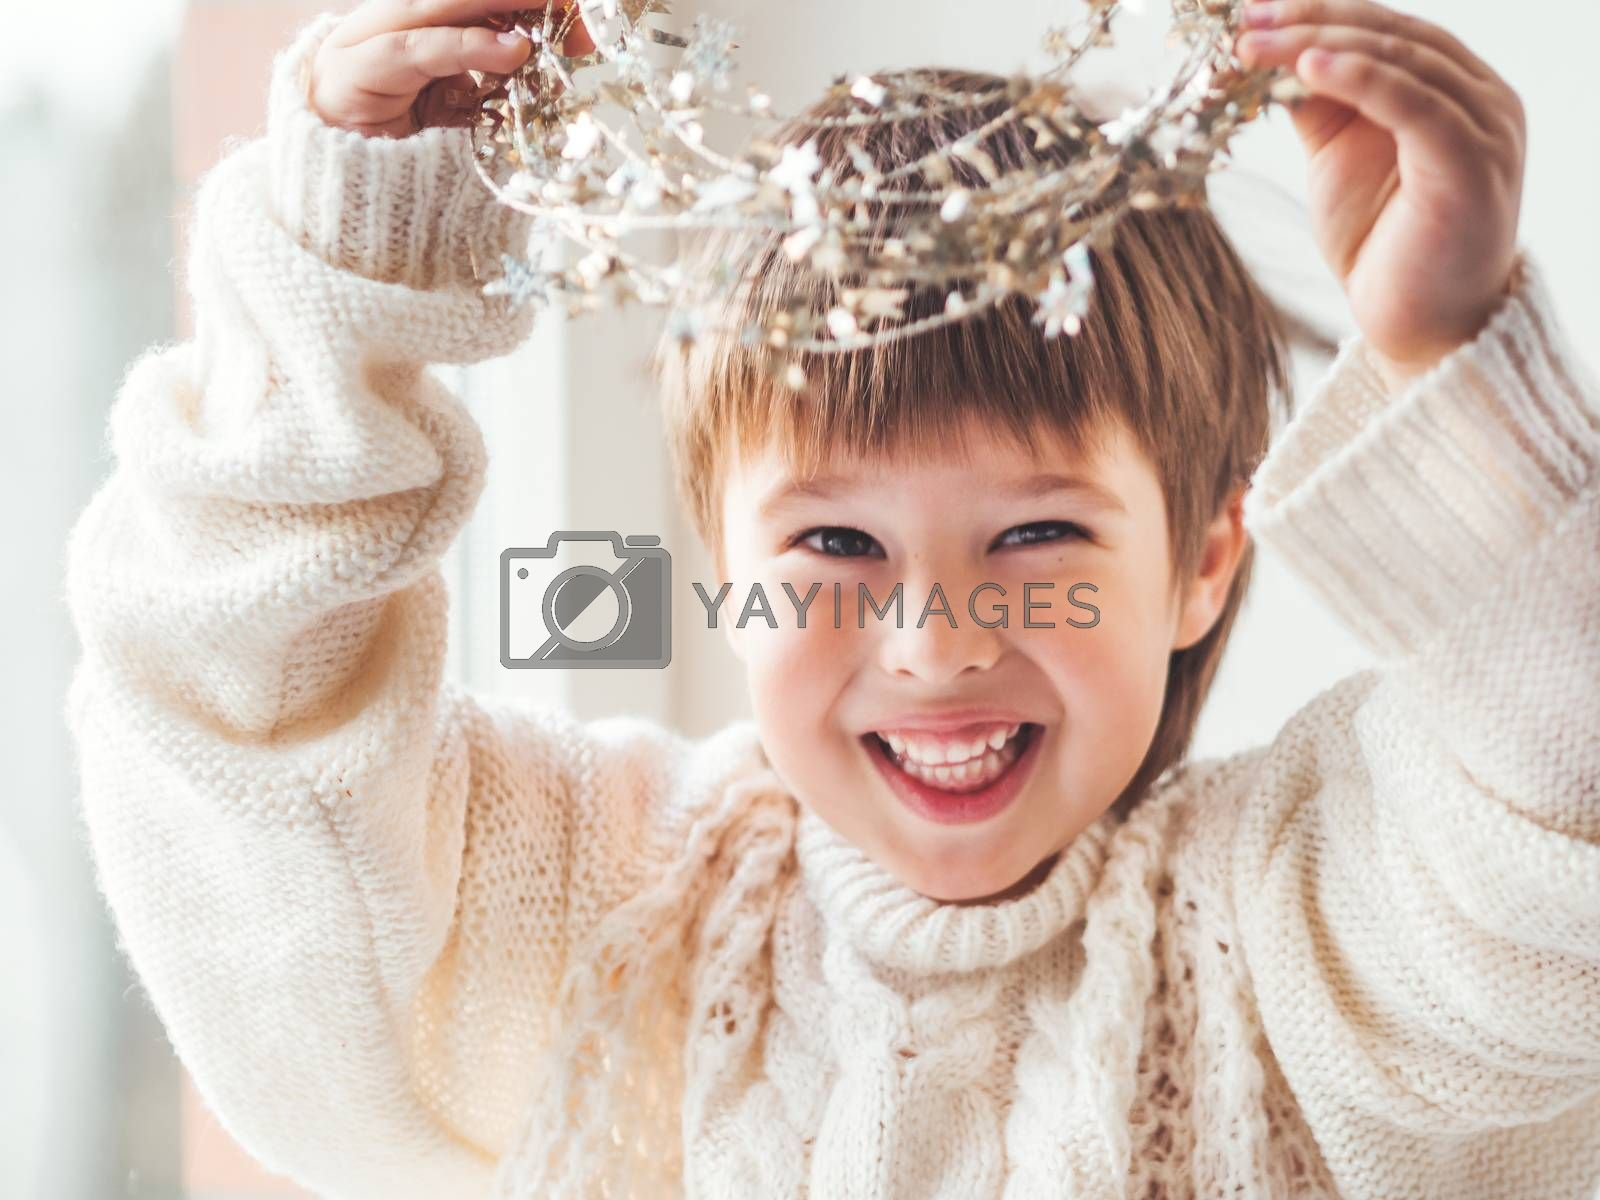 Kid with decorative star tinsel for Christmas tree. Boy in cable-knit oversized sweater. Cozy outfit for snuggle weather. Winter holiday spirit.New year.